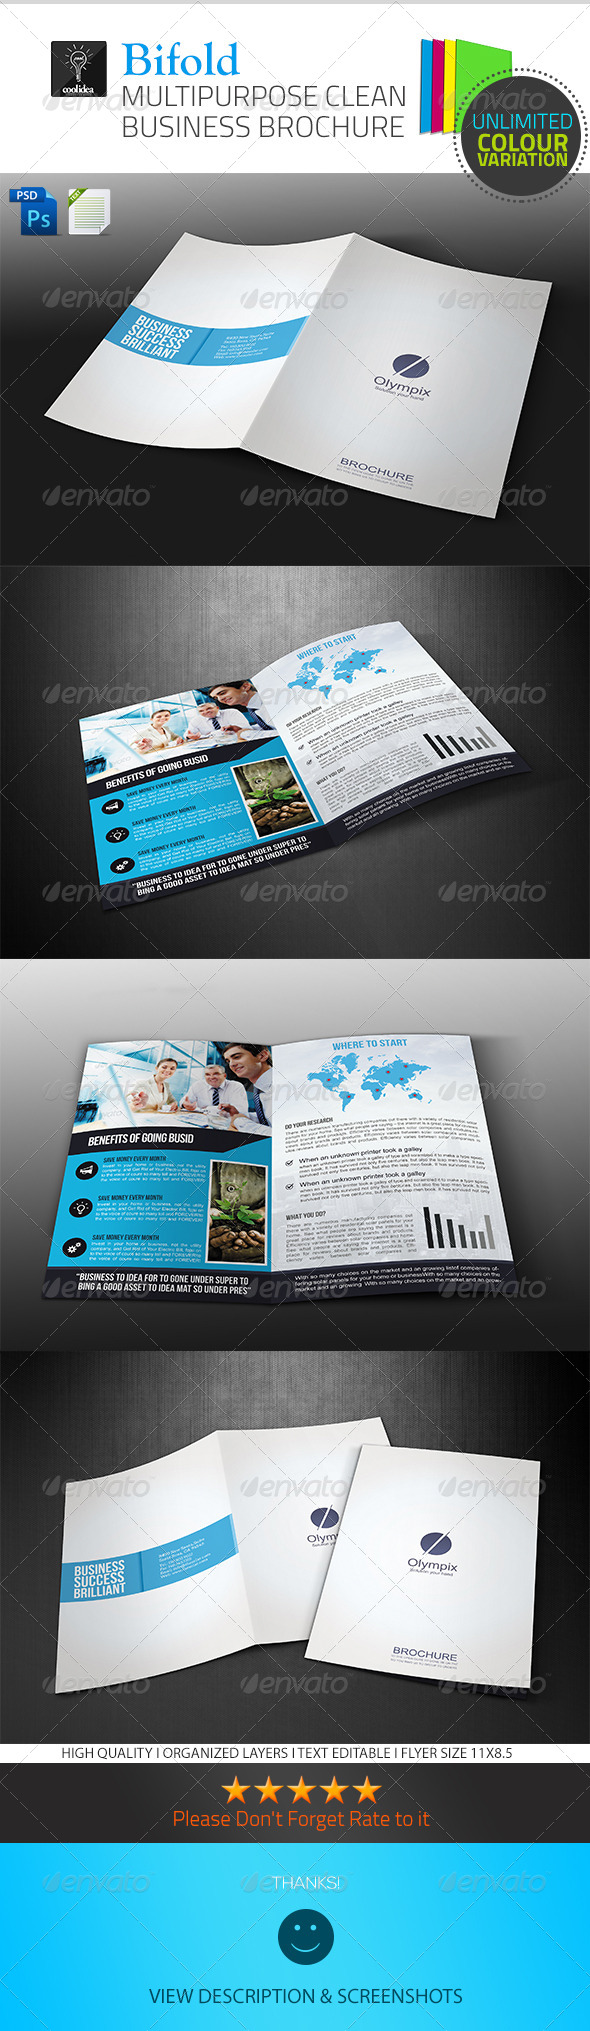 GraphicRiver A4 Business Brochure Bifold Vol01 6703203